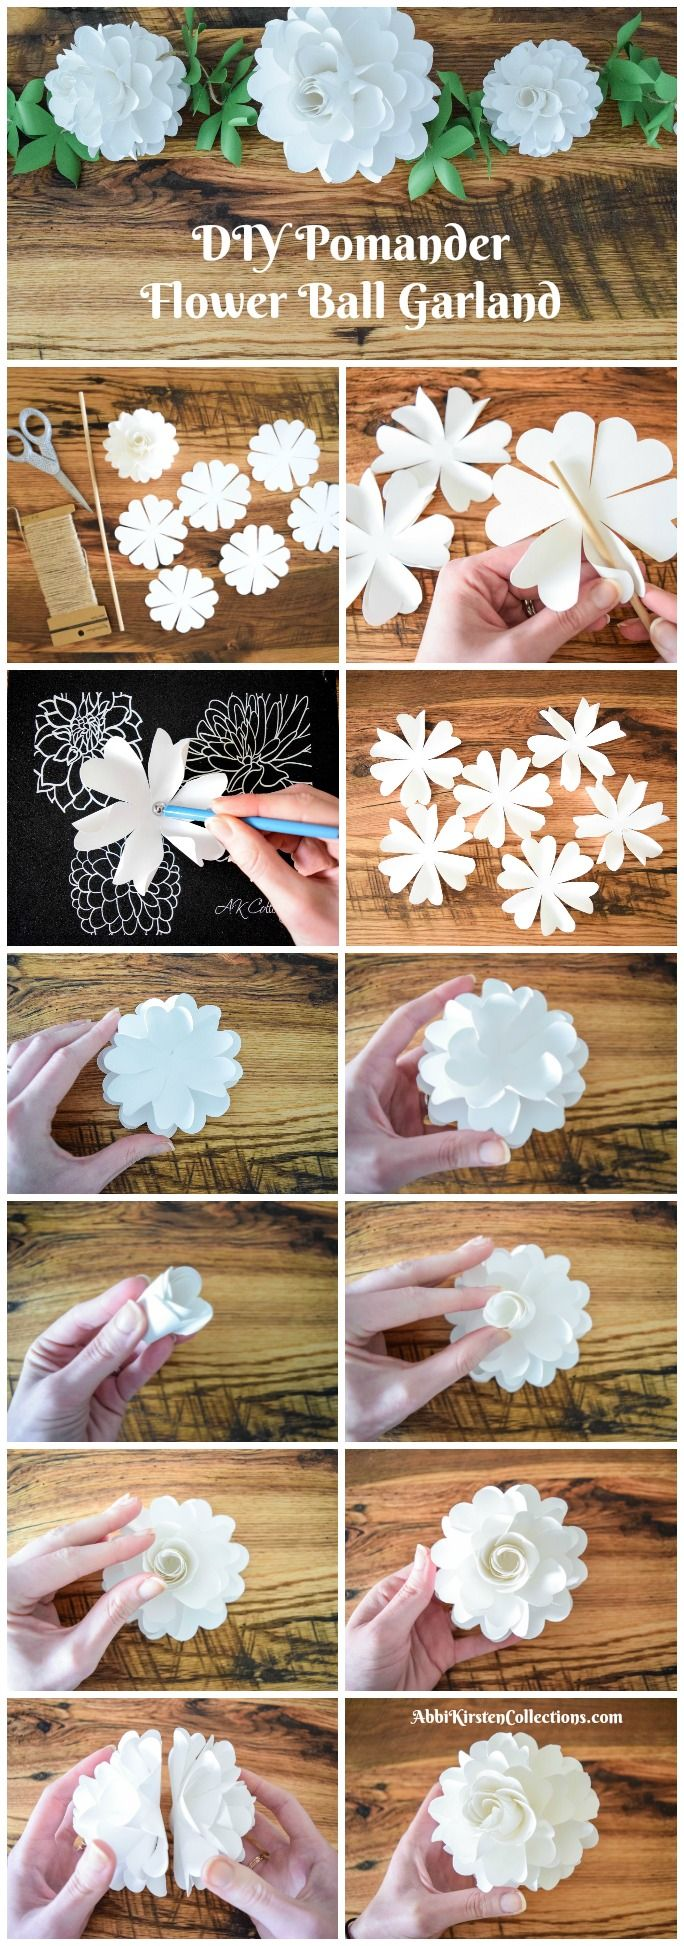 How to make paper flower balls step by step tutorial flower ball how to make paper flower balls step by step tutorial flower ball flower crafts and diy paper mightylinksfo